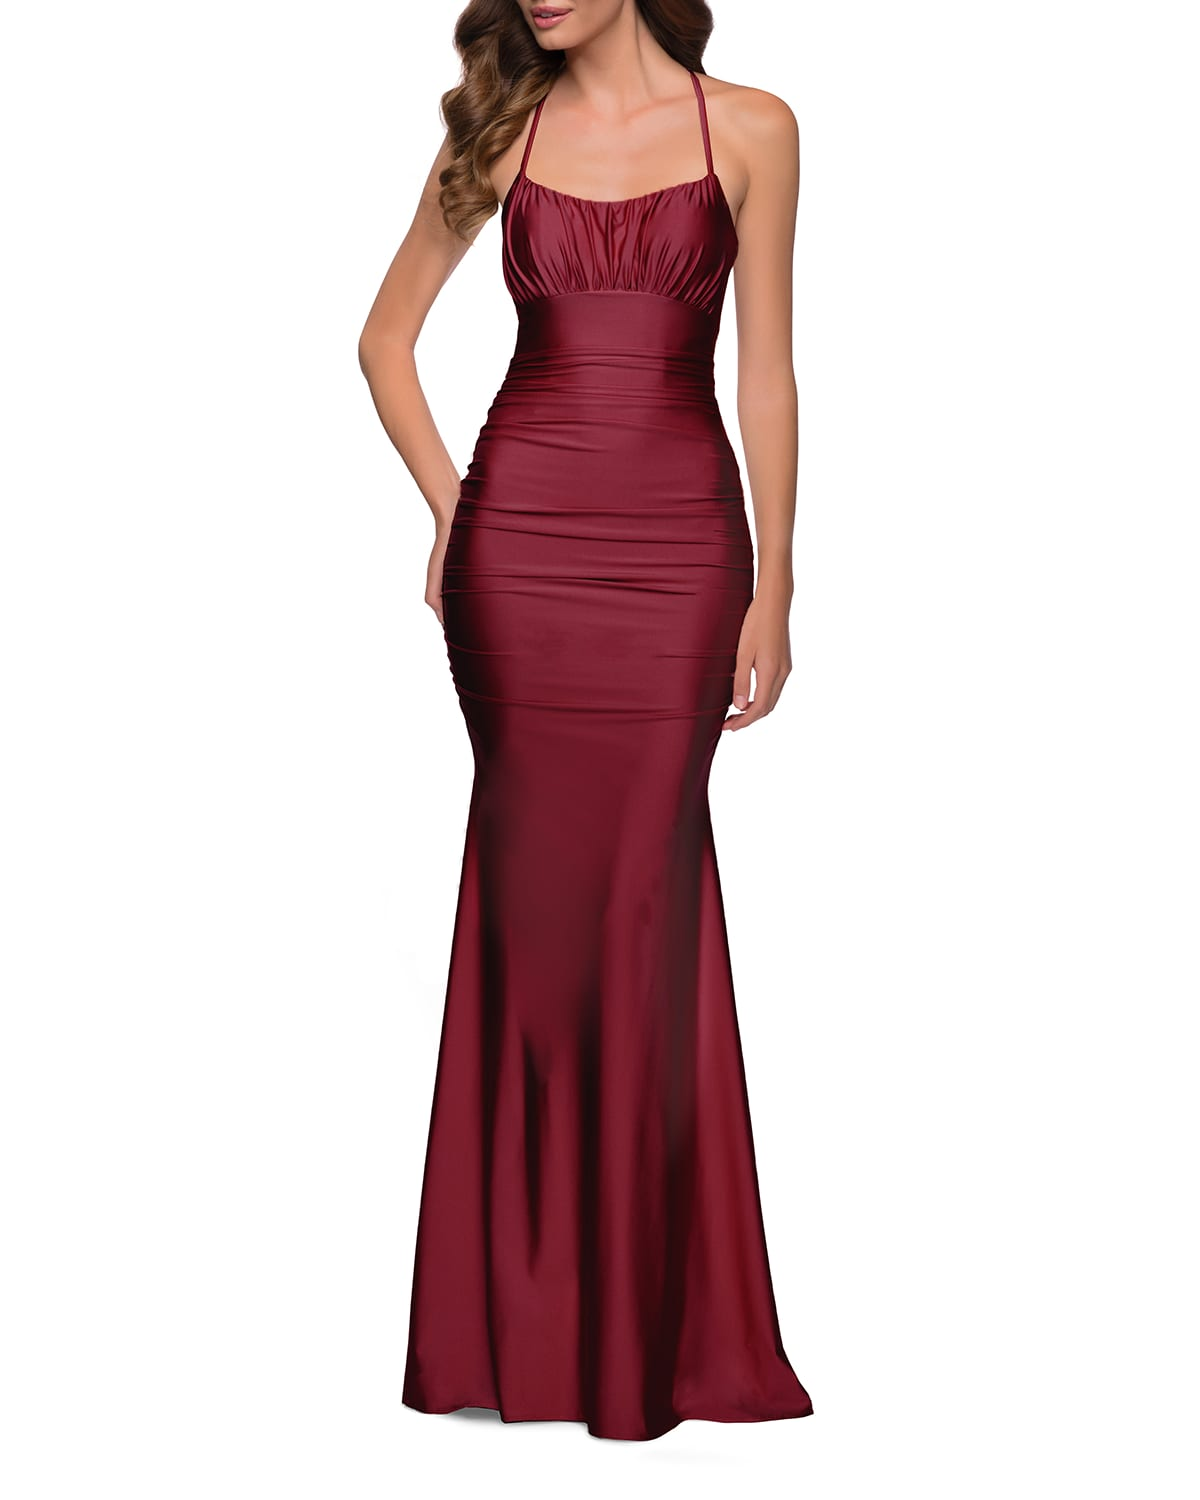 Shiny Jersey Halter Mermaid Gown